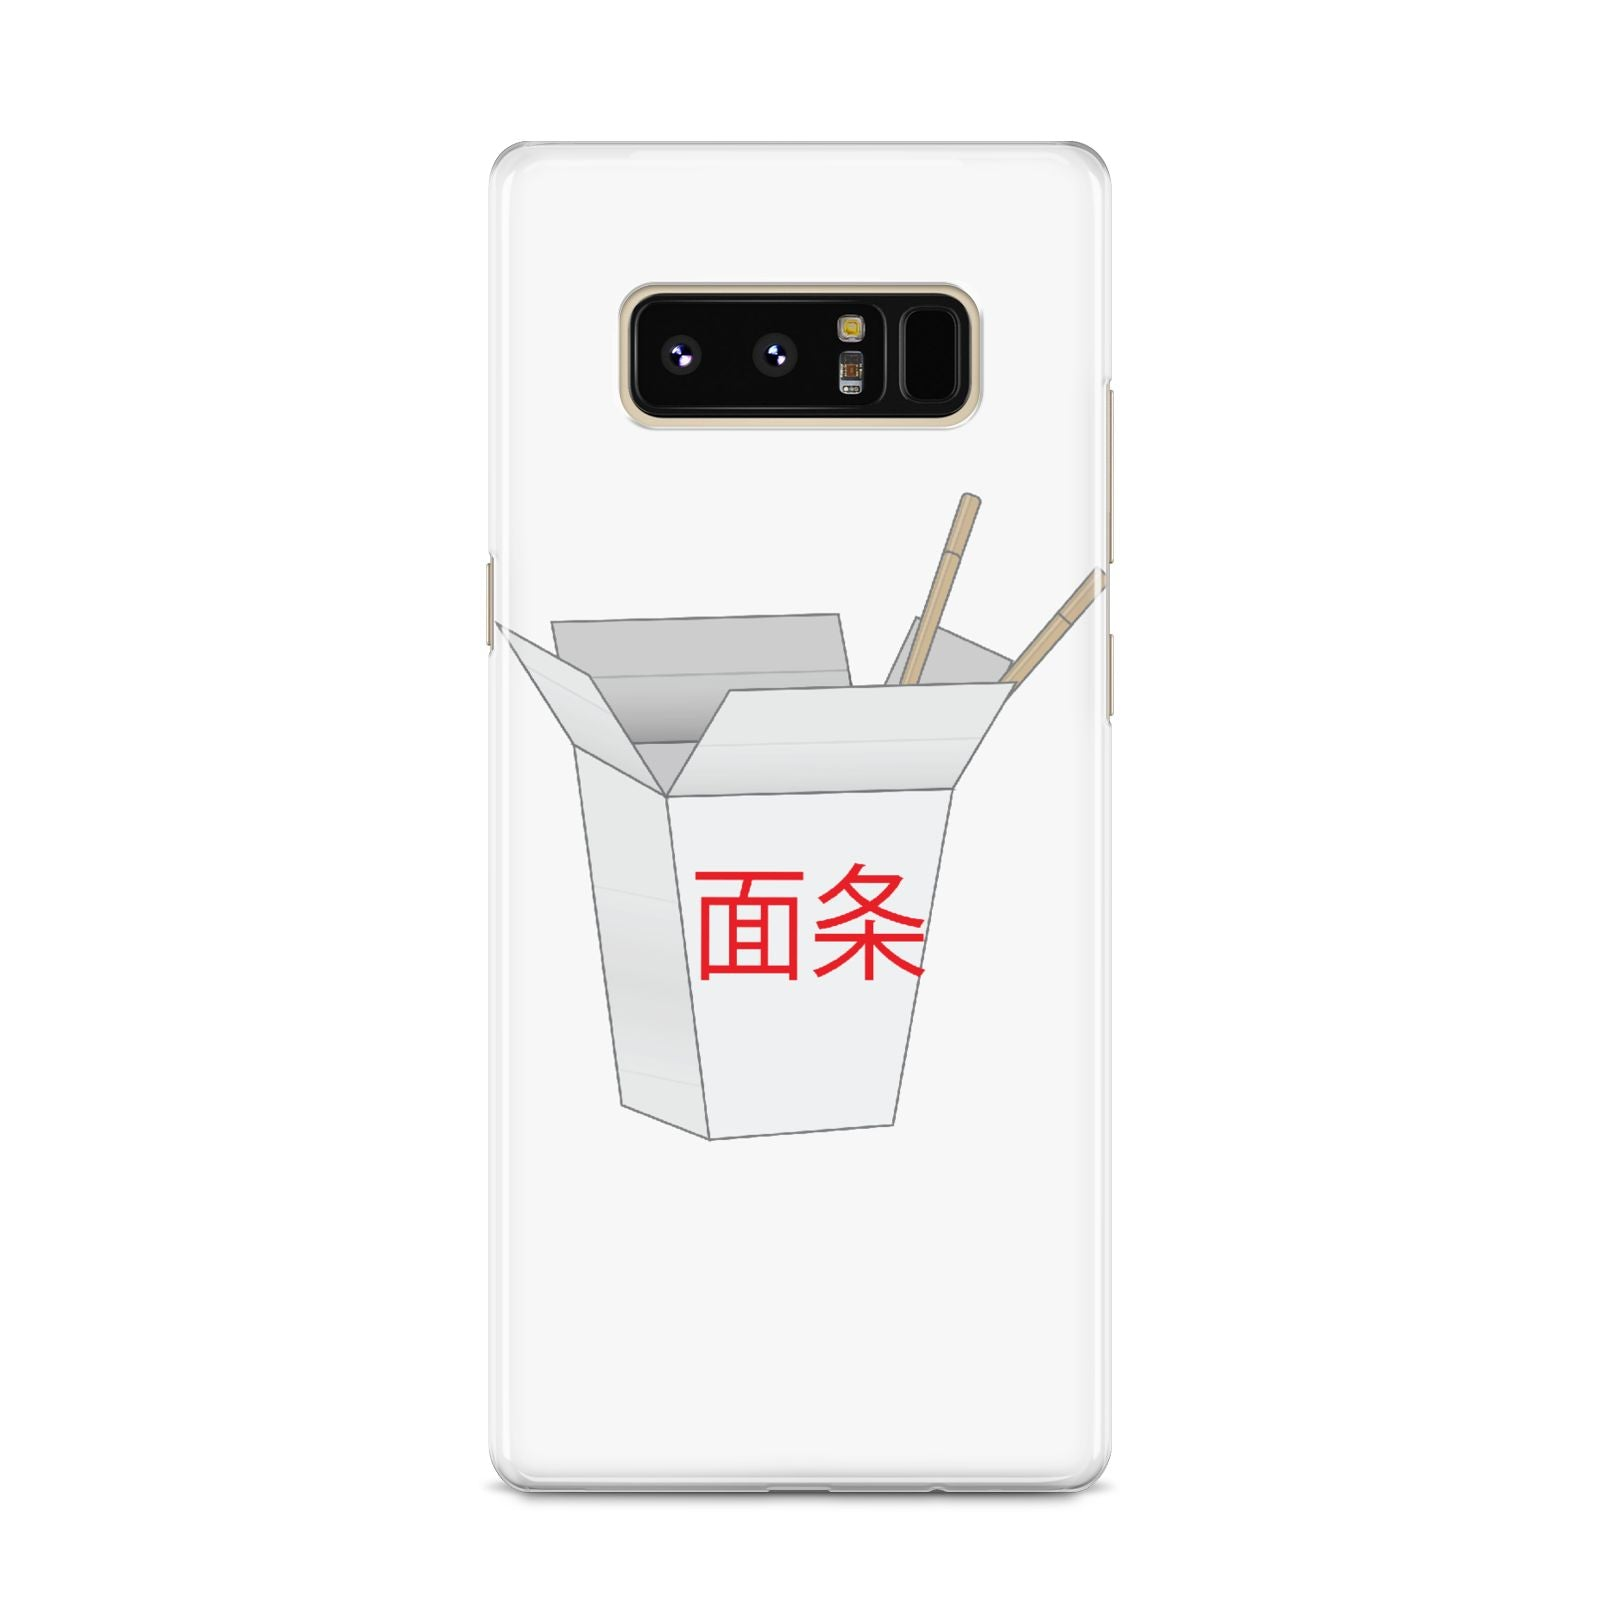 Chinese Takeaway Box Samsung Galaxy S8 Case